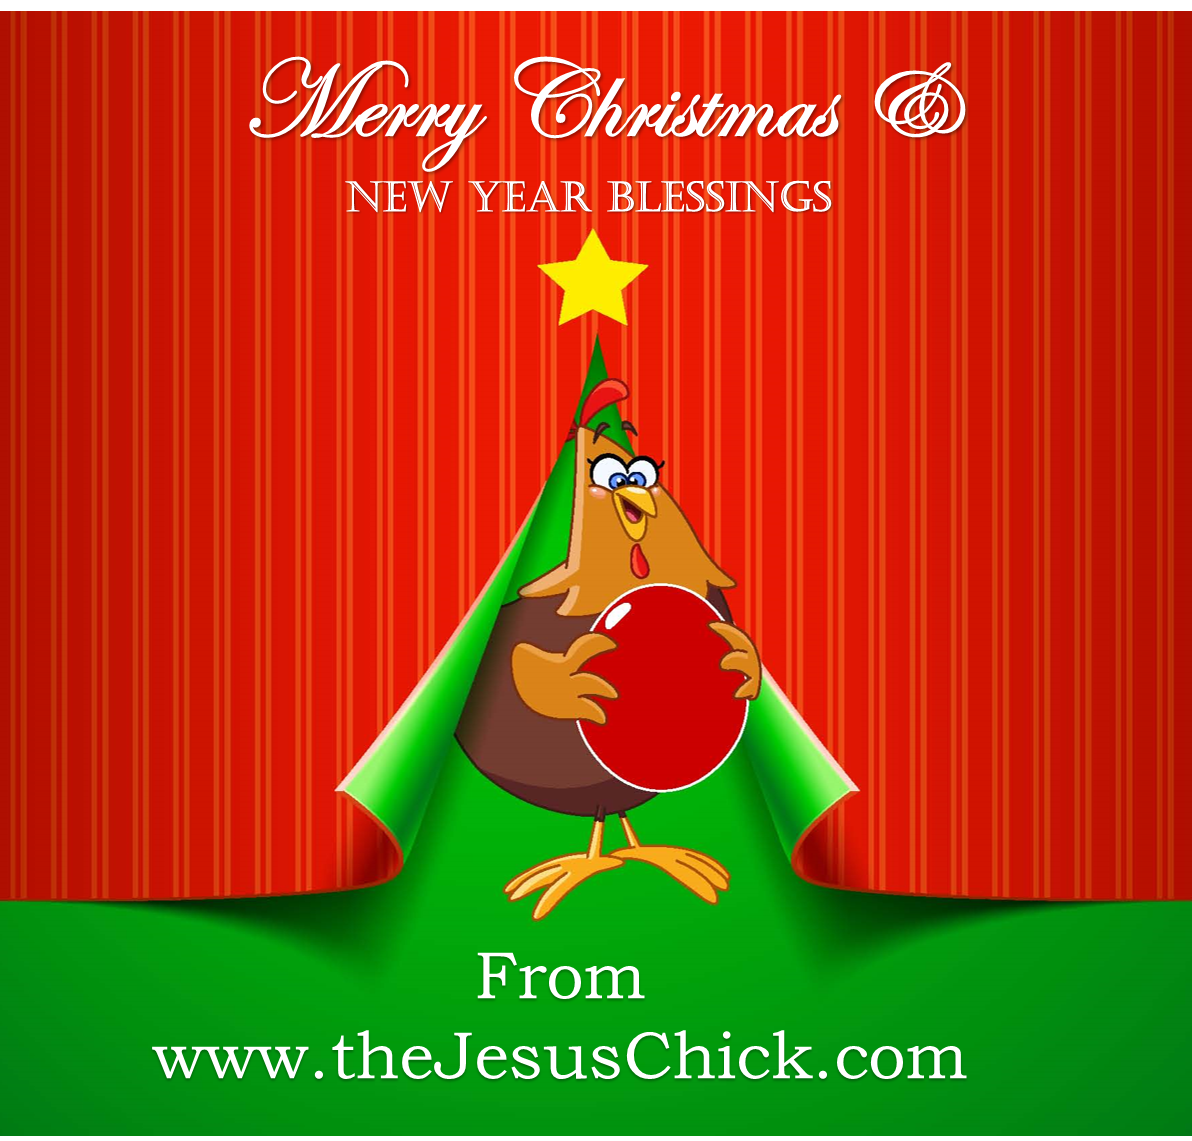 Jesus Chick Christmas